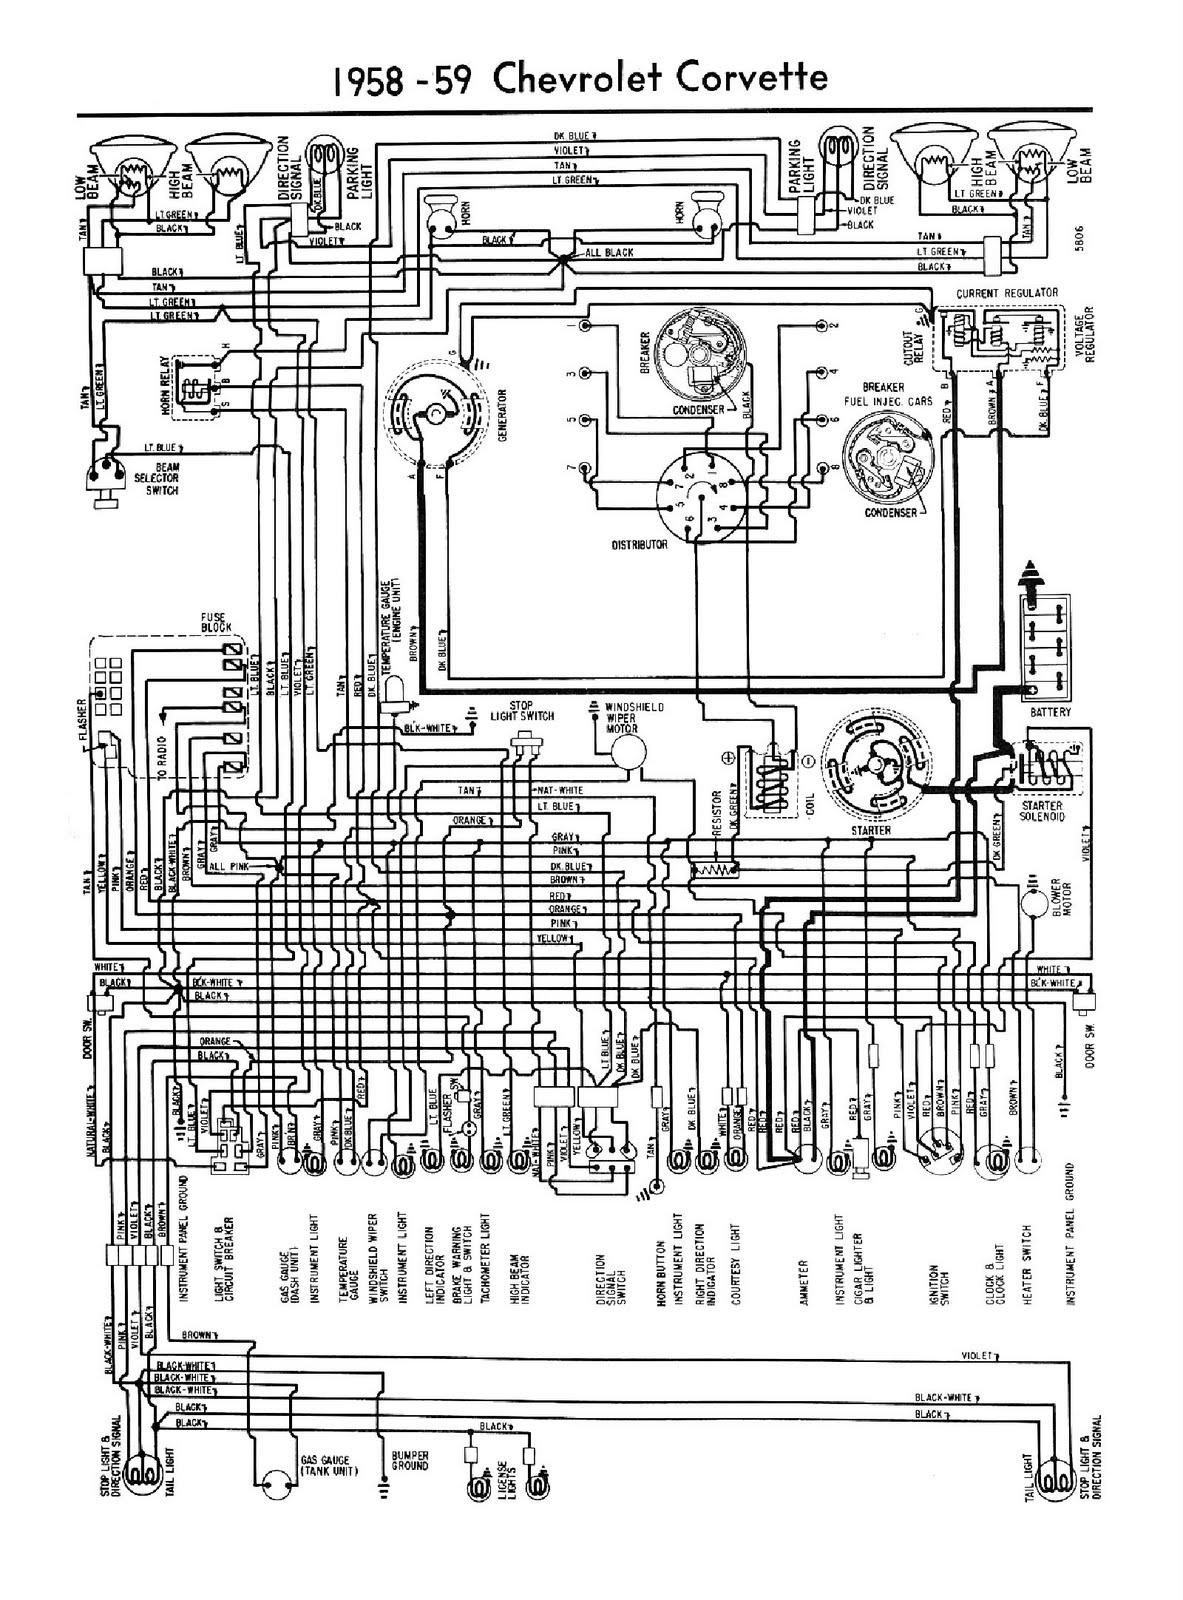 1959 Chrysler Wiring Diagram Trusted Diagrams 2004 Sebring Schematics Cadillac Enthusiast U2022 Rh Rasalibre Co Dodge Ram 2500 Pacifica